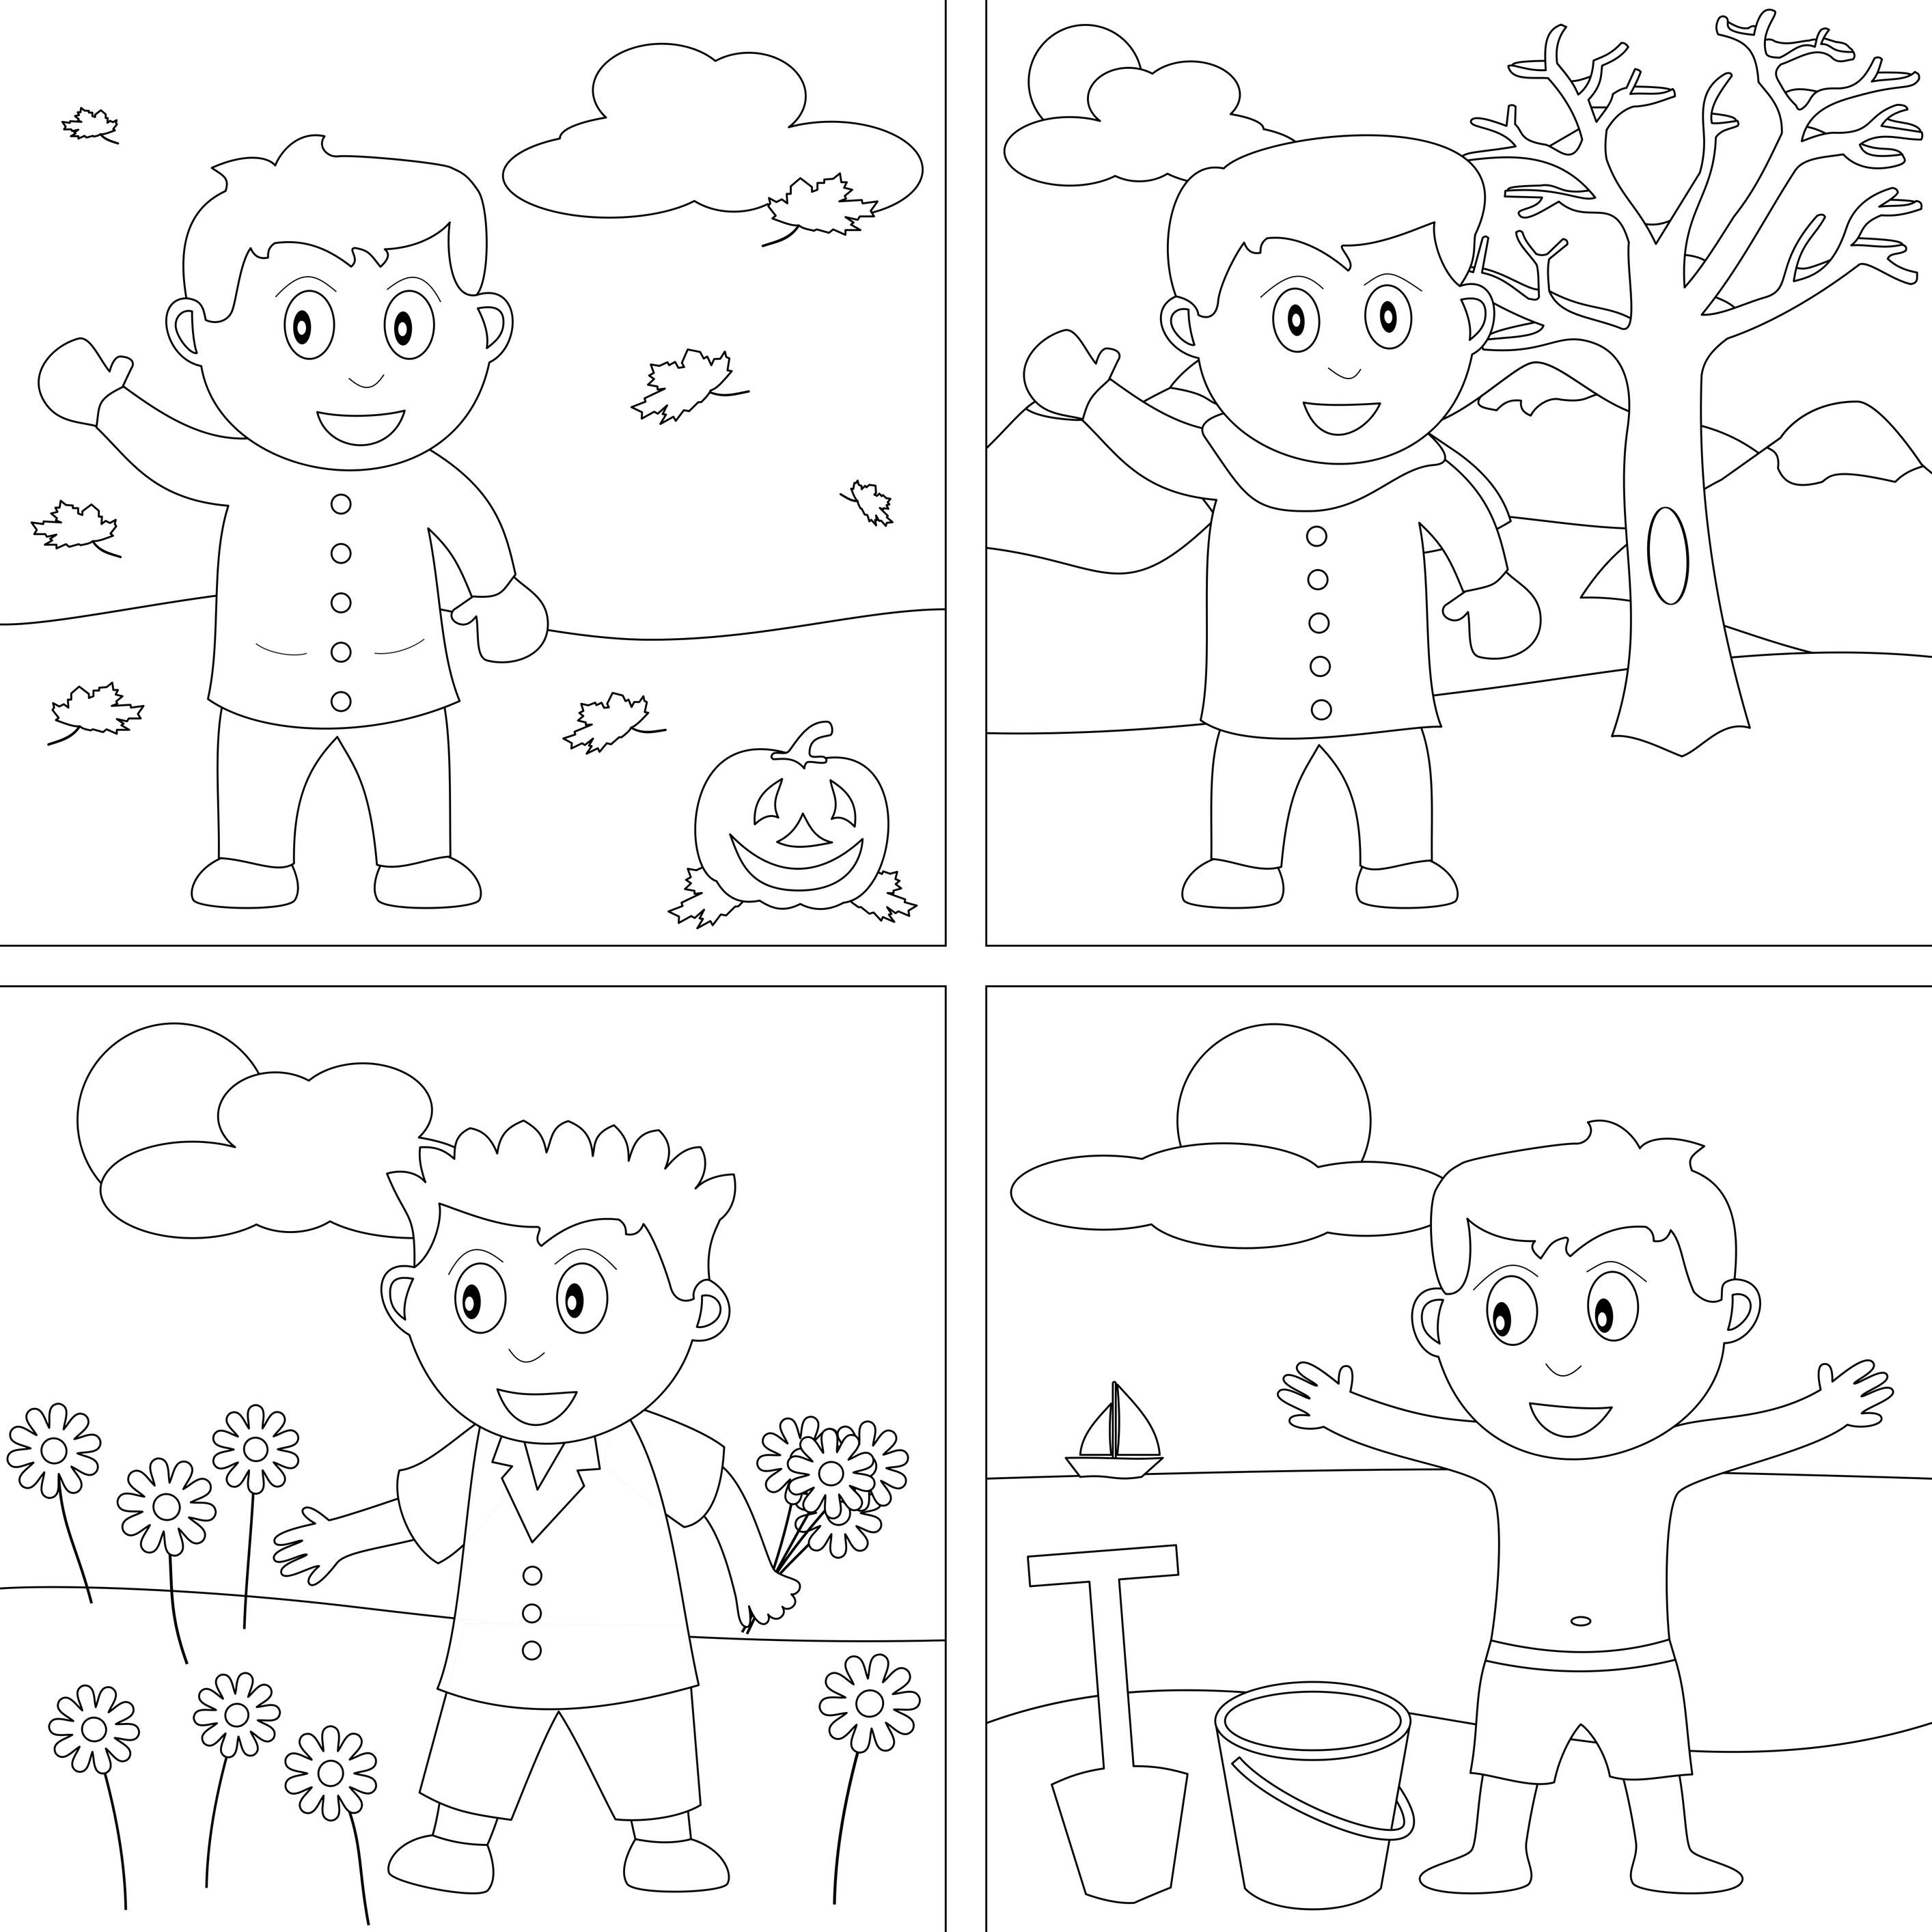 4 Seasons Coloring Pages At Seasons Coloring Pages